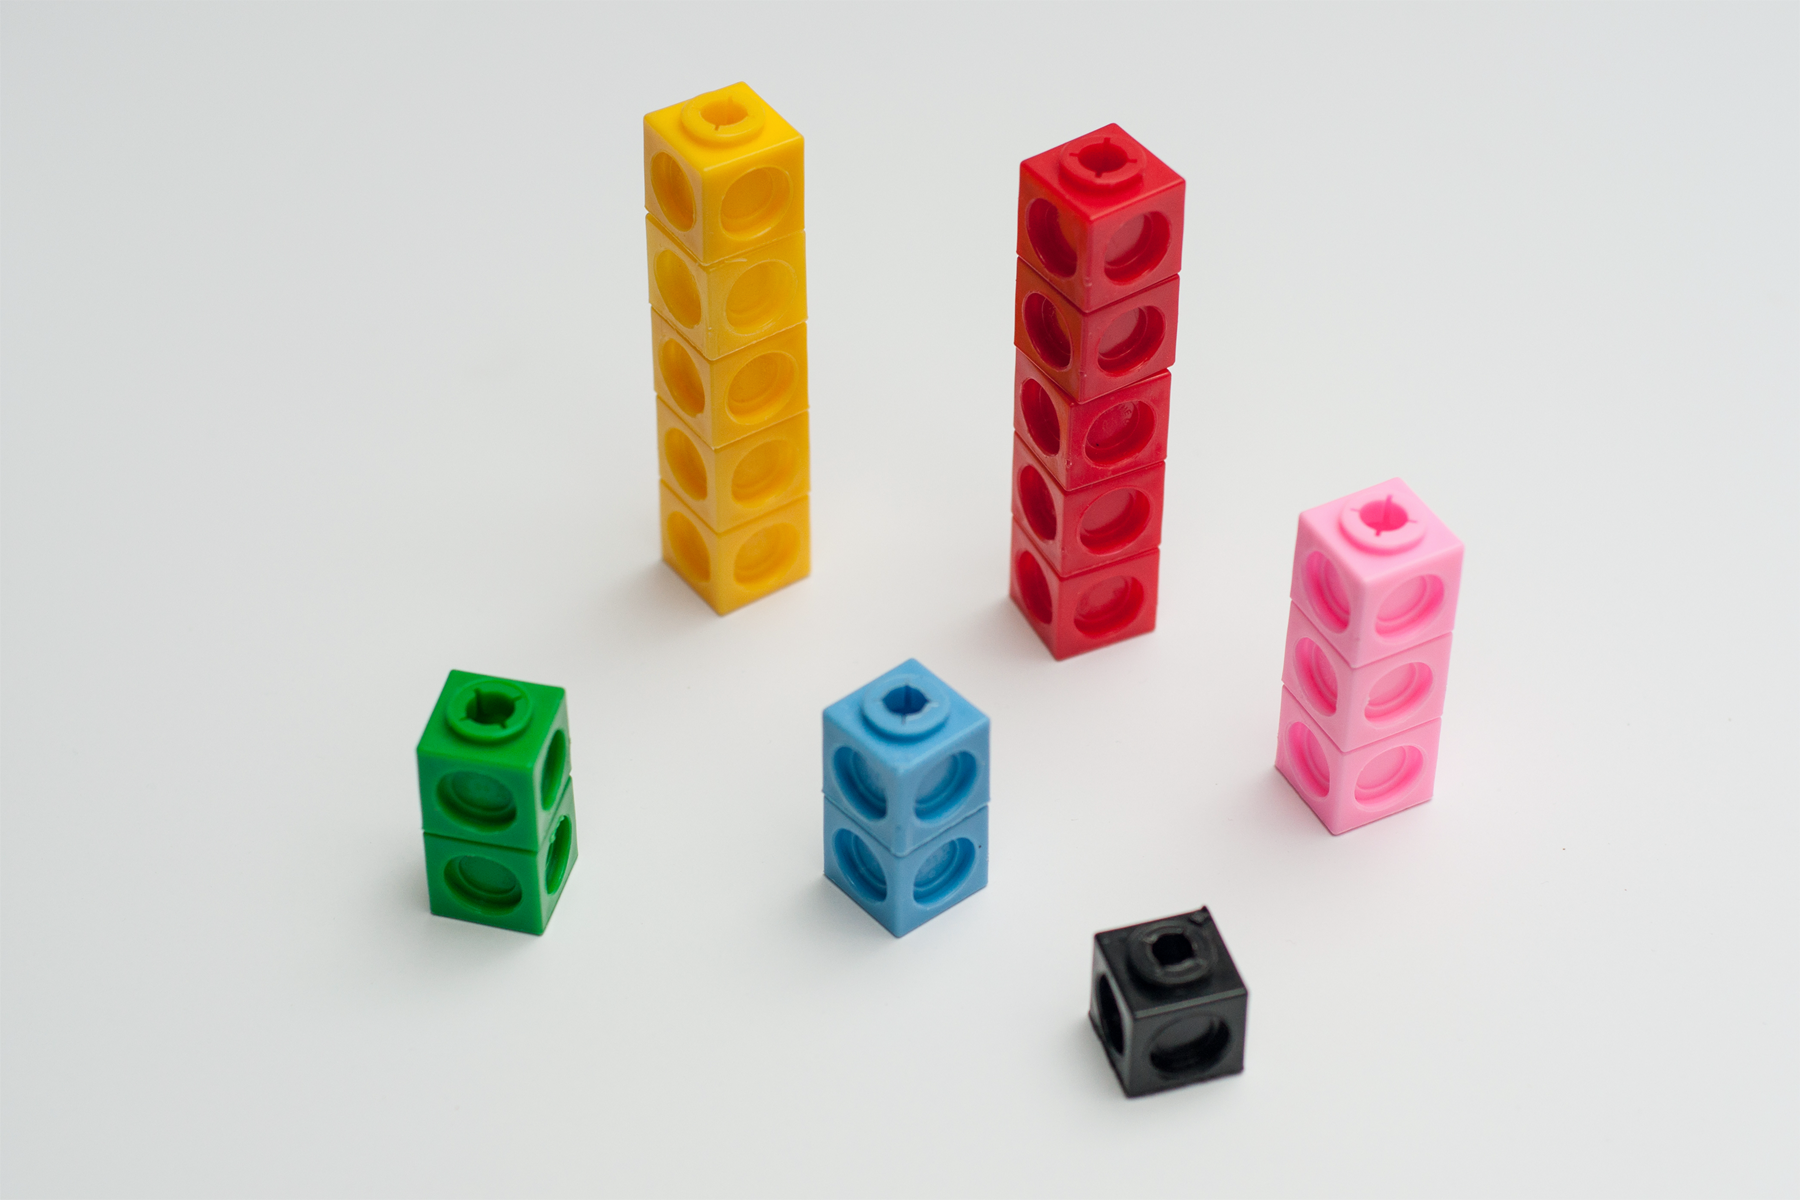 """A diagram shows a collection of snap cubes arranged by color. The collection contains 2 green, 5 yellow, 5 red, 3 pink, 2 blue, and 1 black."""